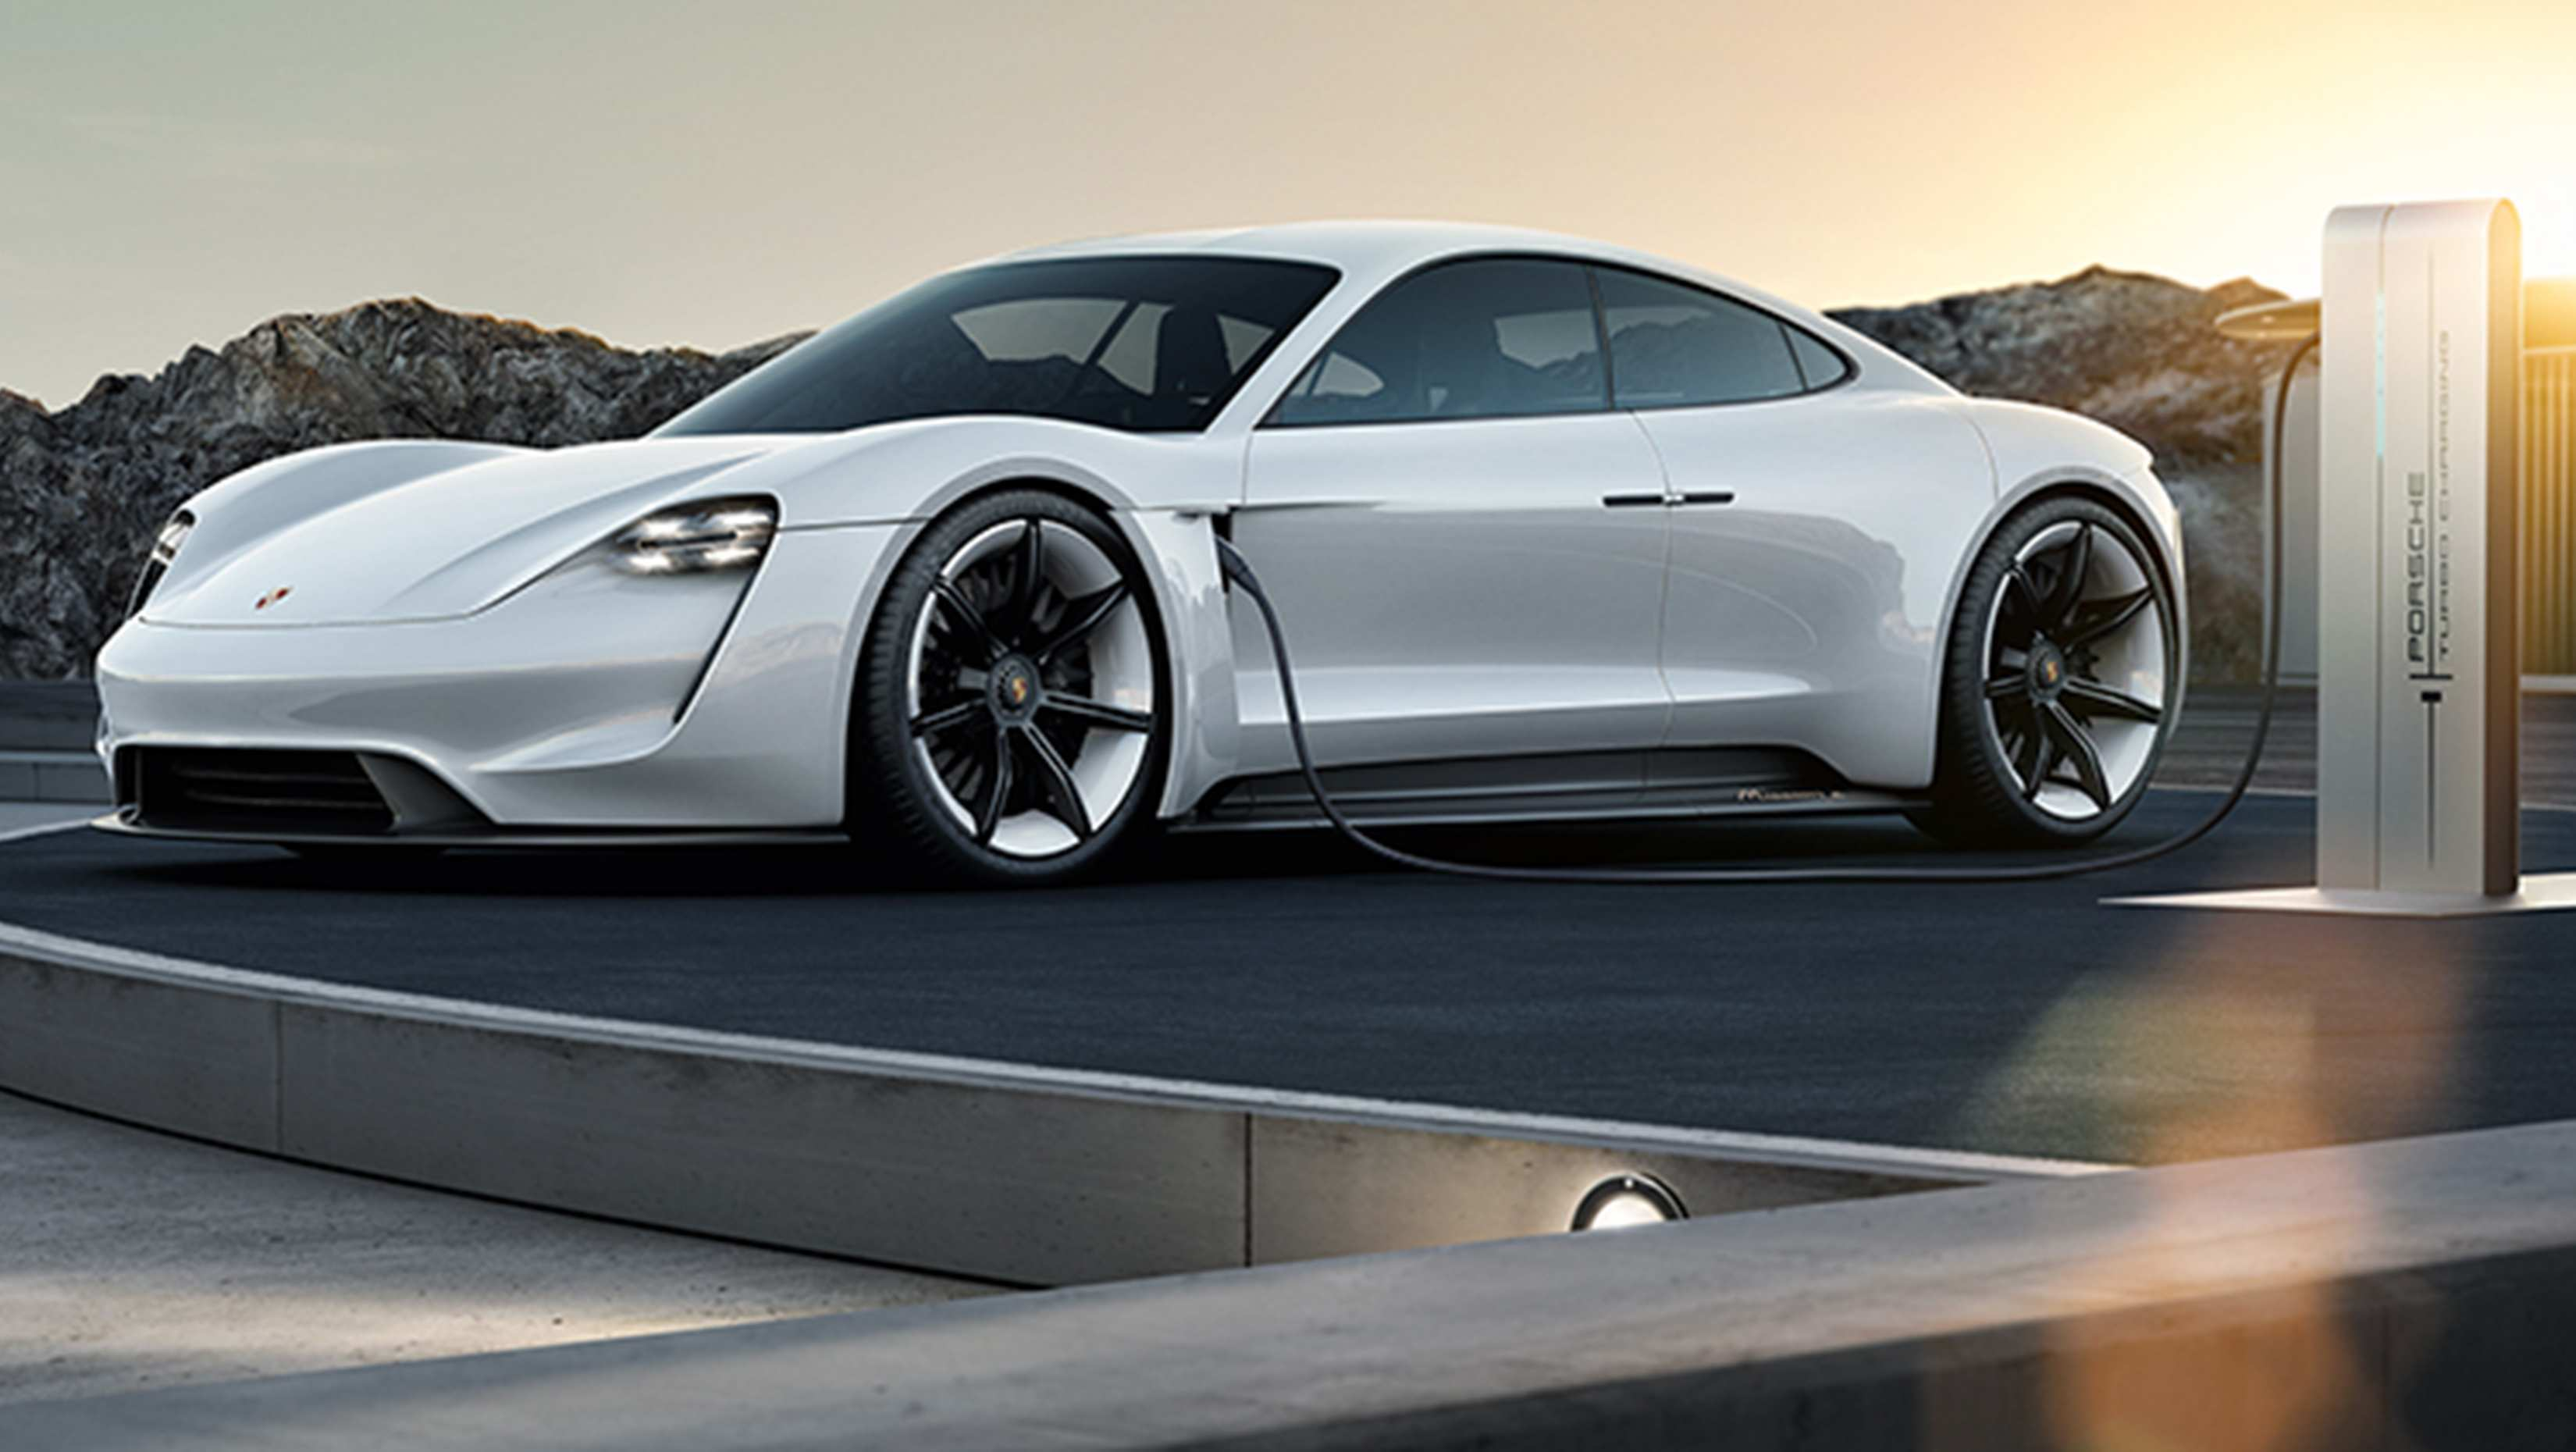 89 All New 2020 Porsche Electric Car Release